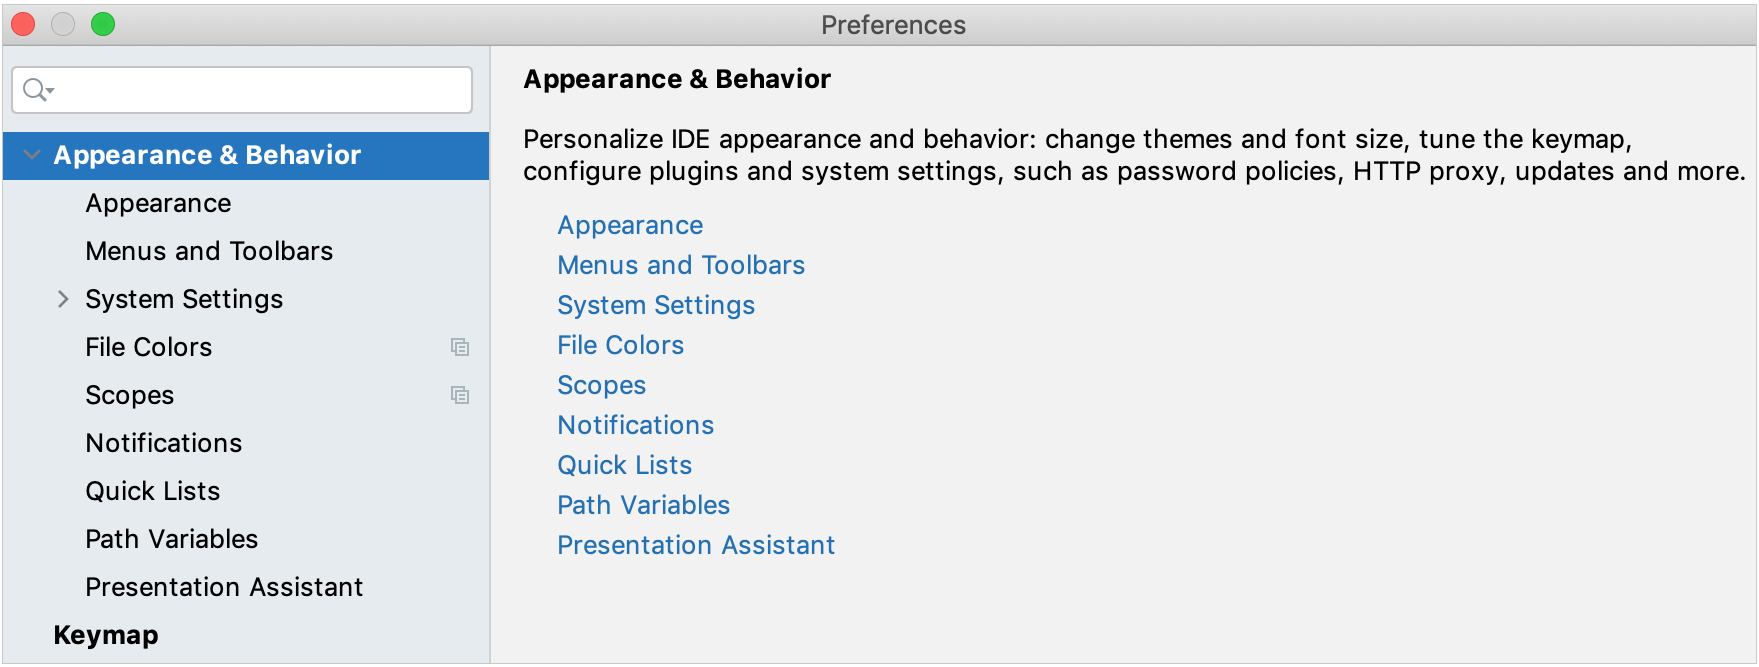 Appearance and Behavior